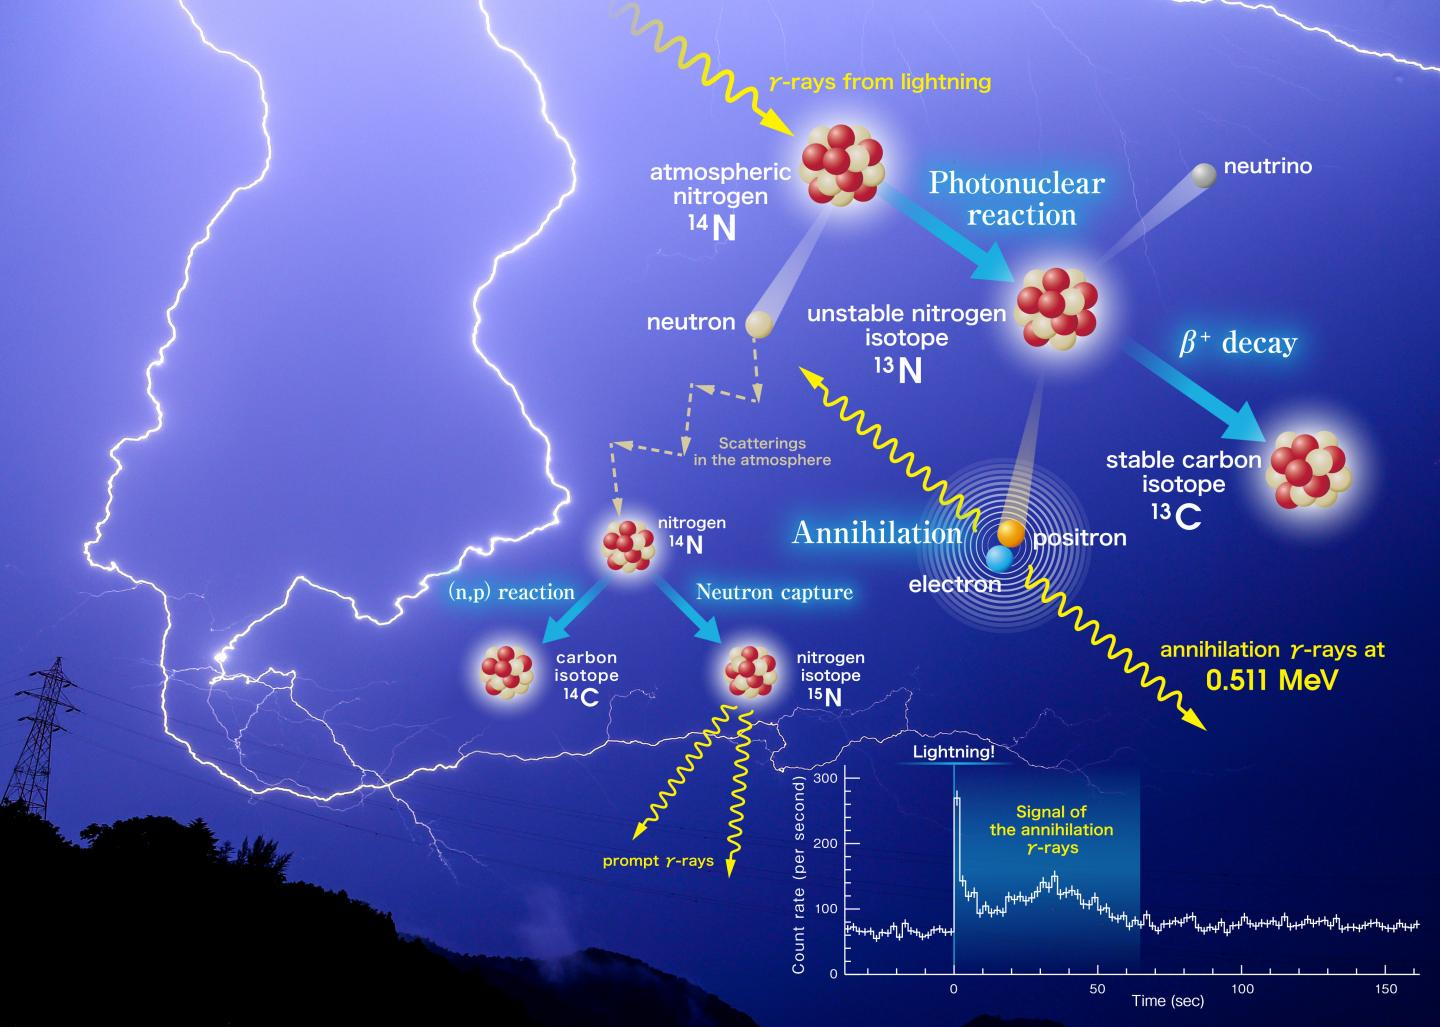 Antimatter in Thunderstorms?